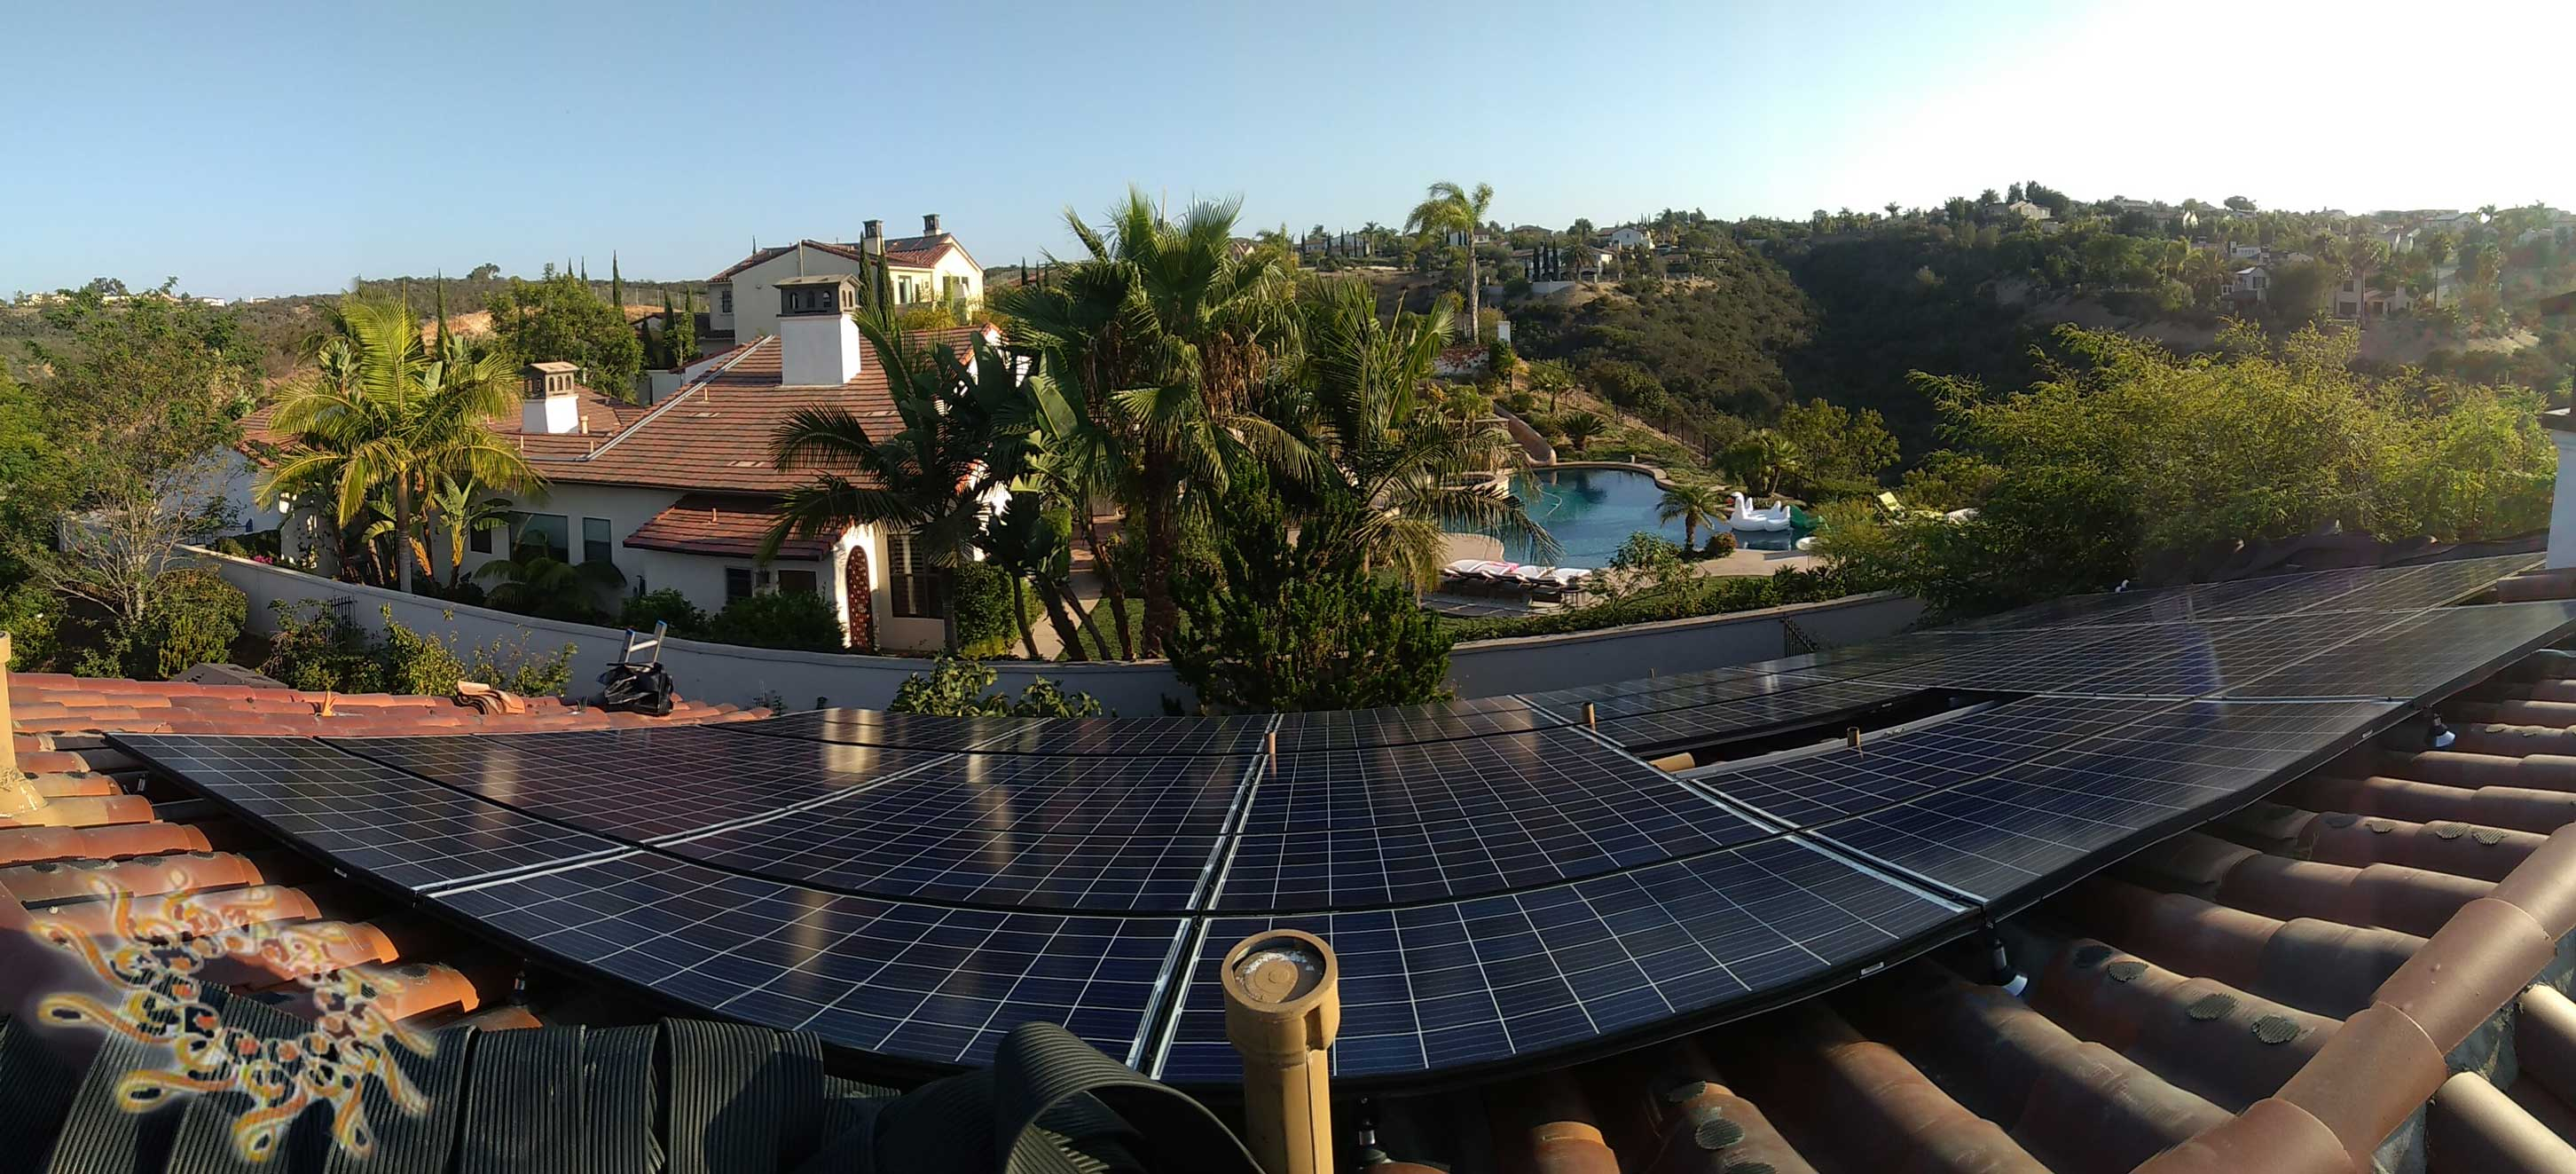 Home Solar Panel Installation Done Right in San Diego, California.